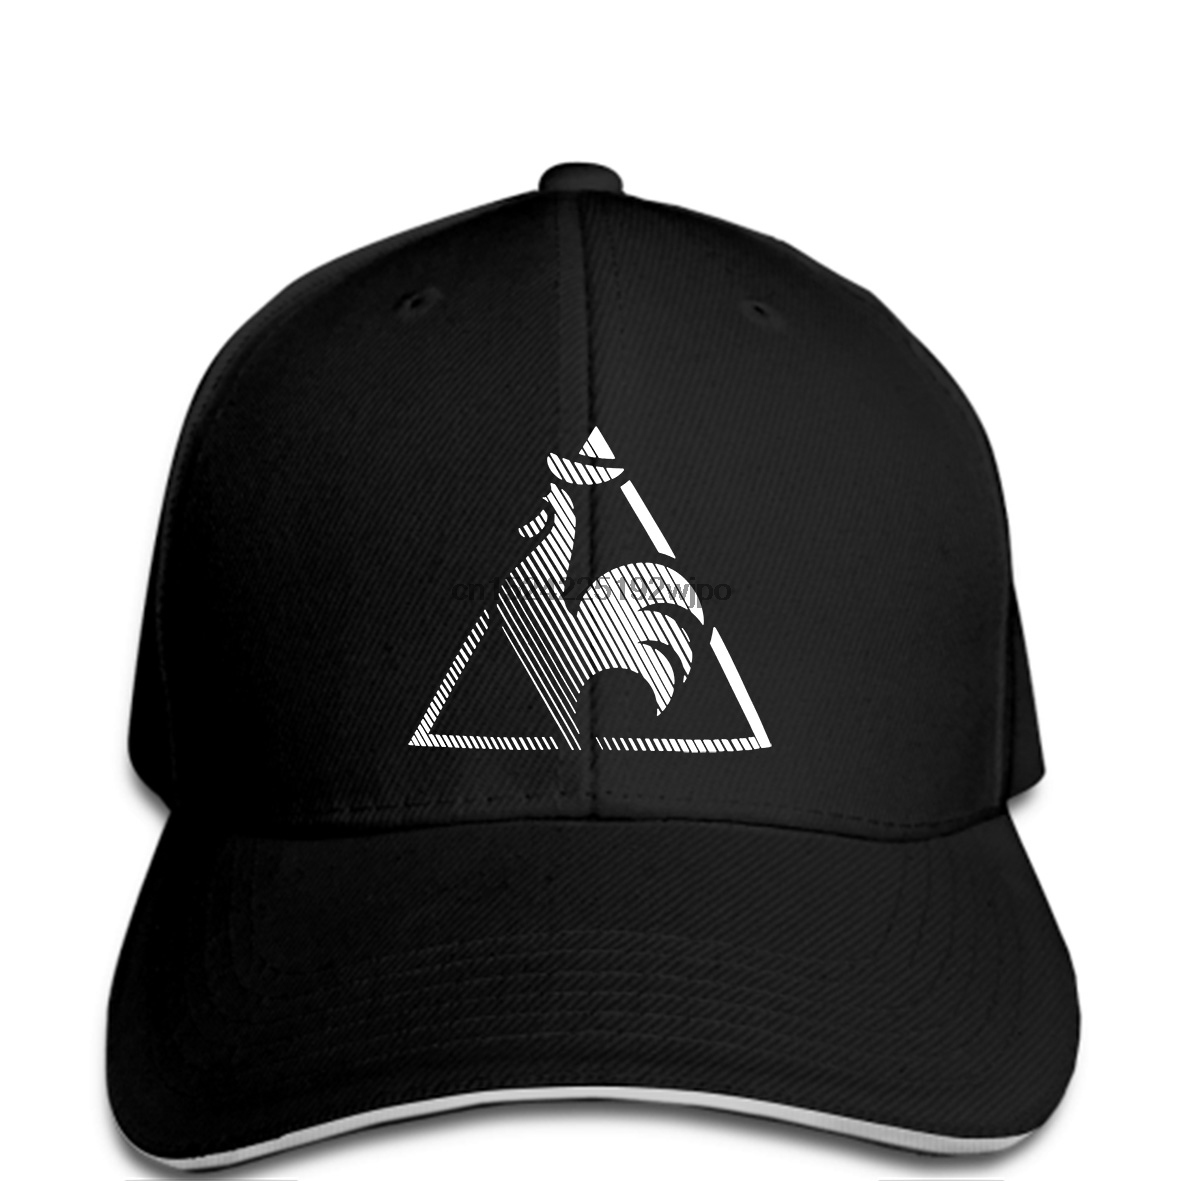 d9cefa58 Detail Feedback Questions about Men Baseball cap Fashion Le Sportif  Essentiel Embroidered Coq Baseball cap in Black funny cap novelty cap women  on ...